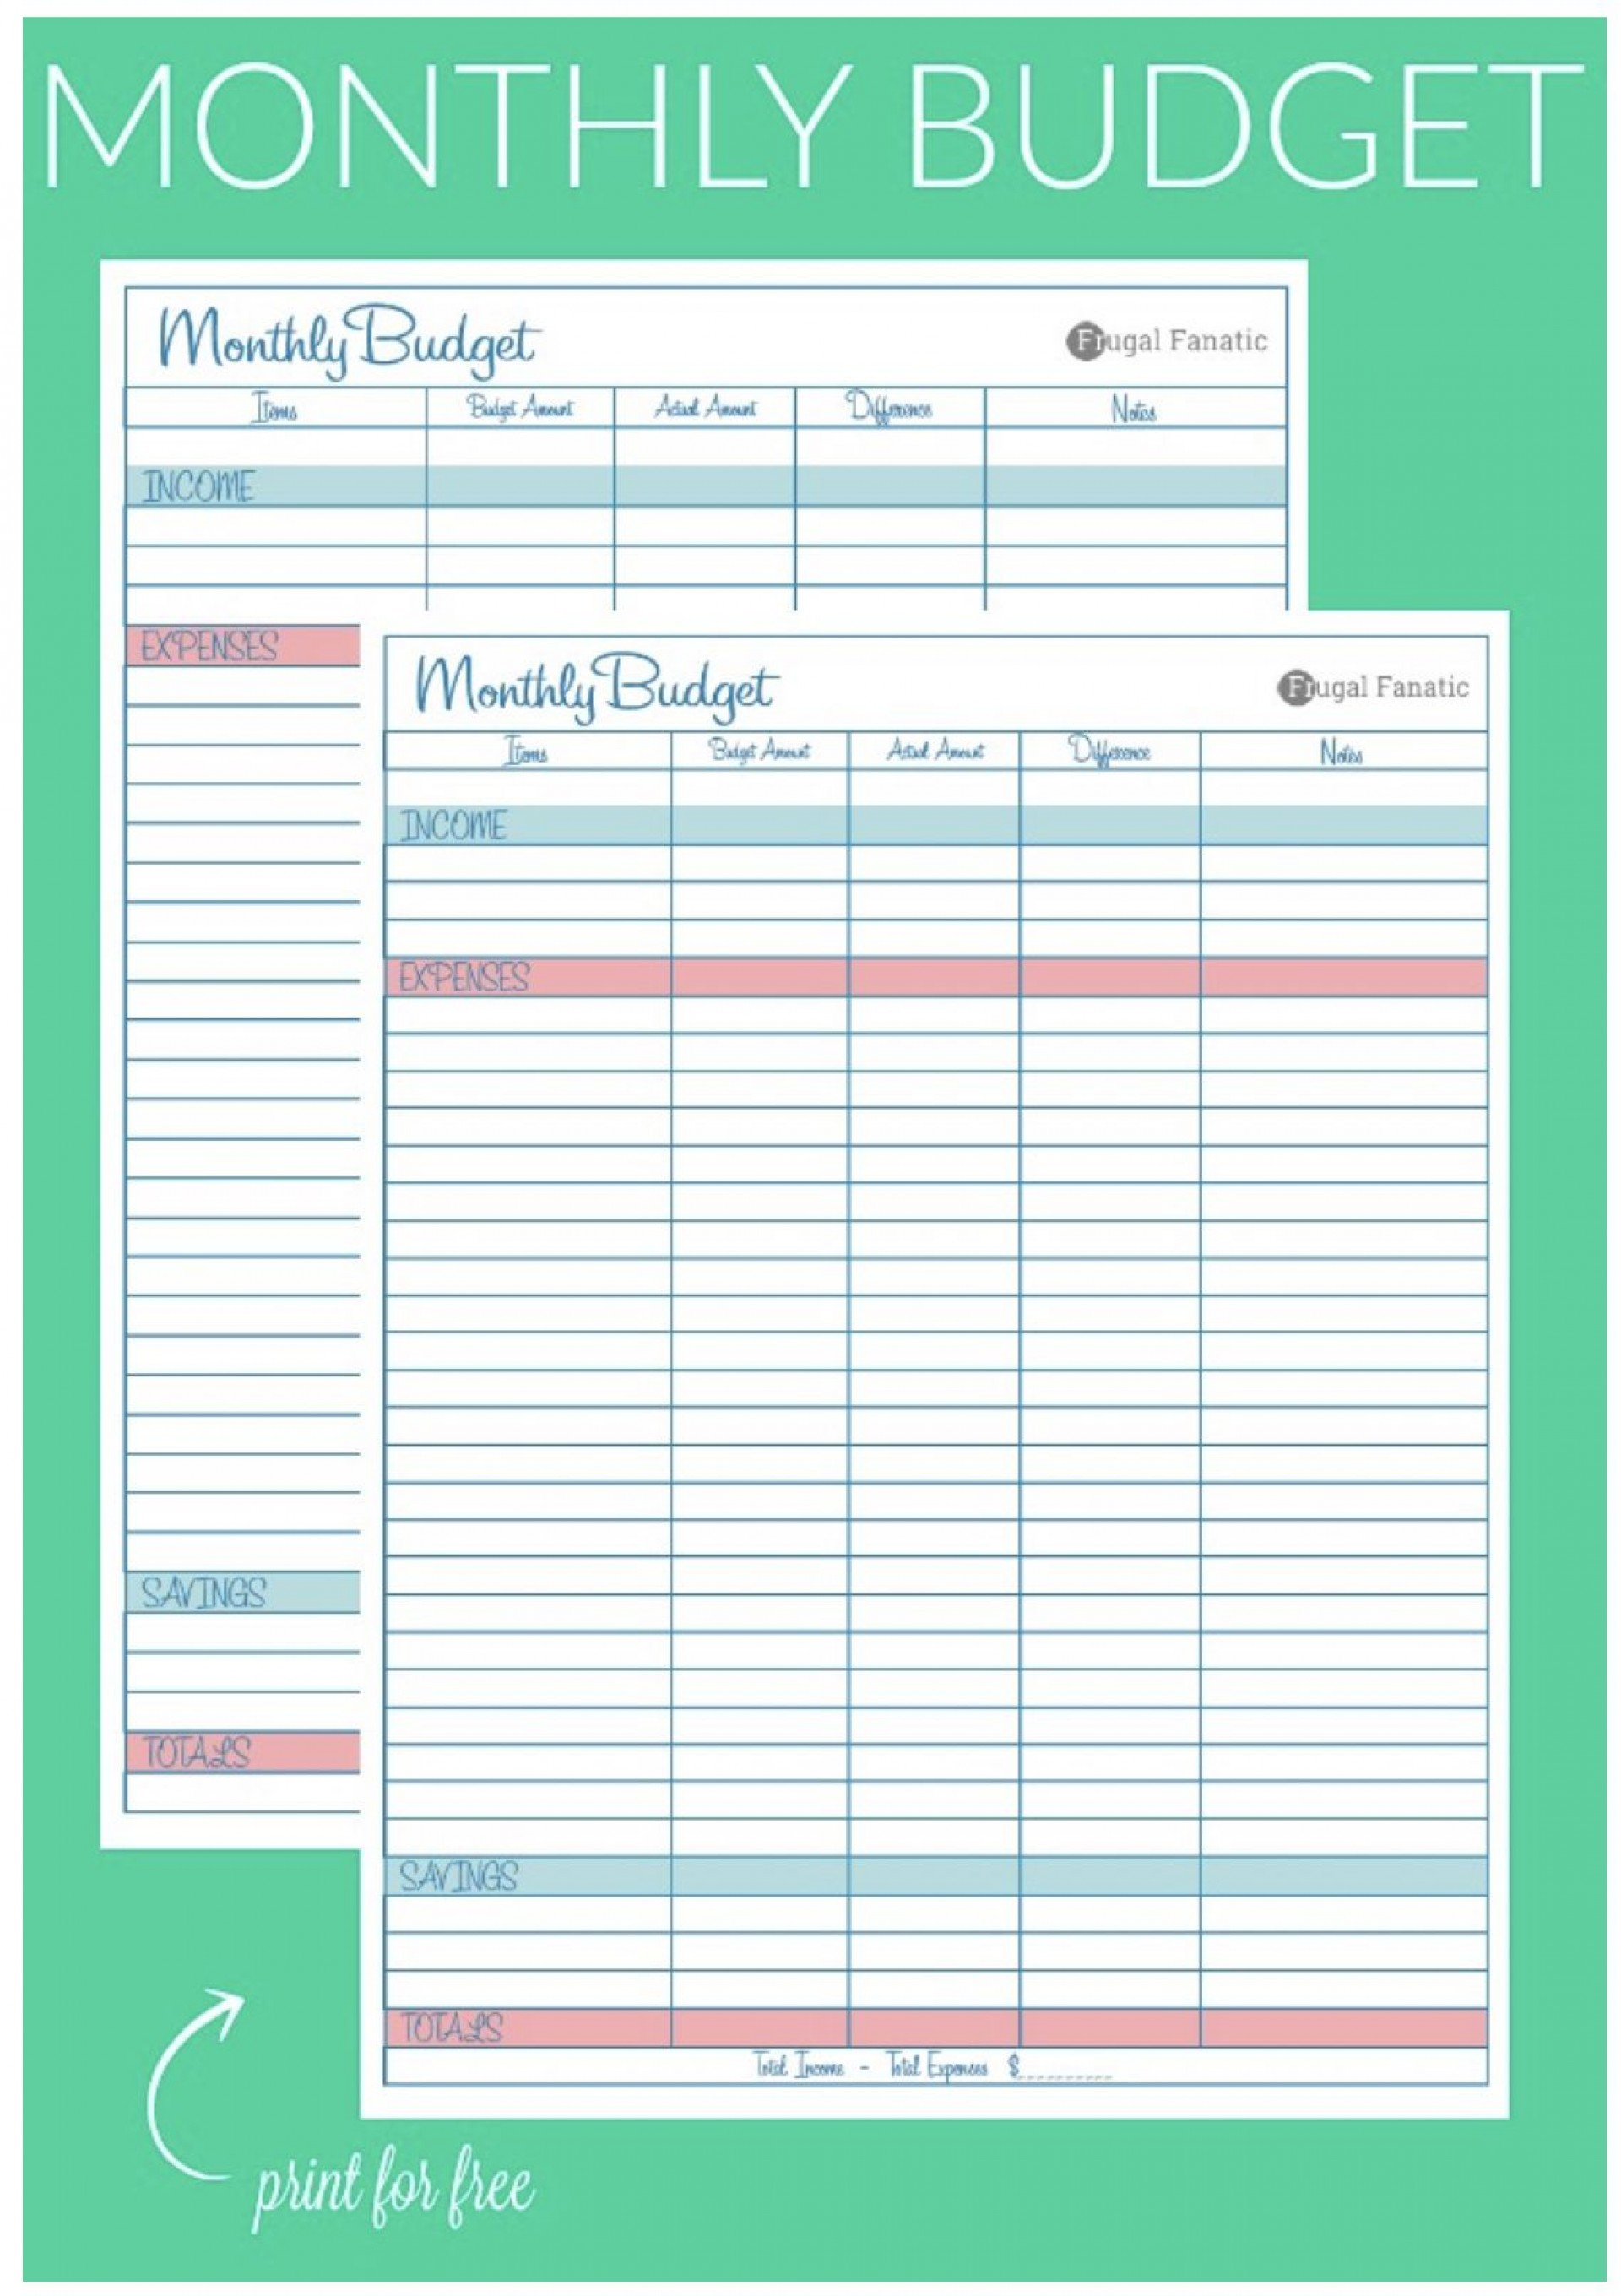 008 Outstanding Blank Monthly Budget Sheet High Resolution  Sheets Free Printable Editable Template Personal Worksheet1920